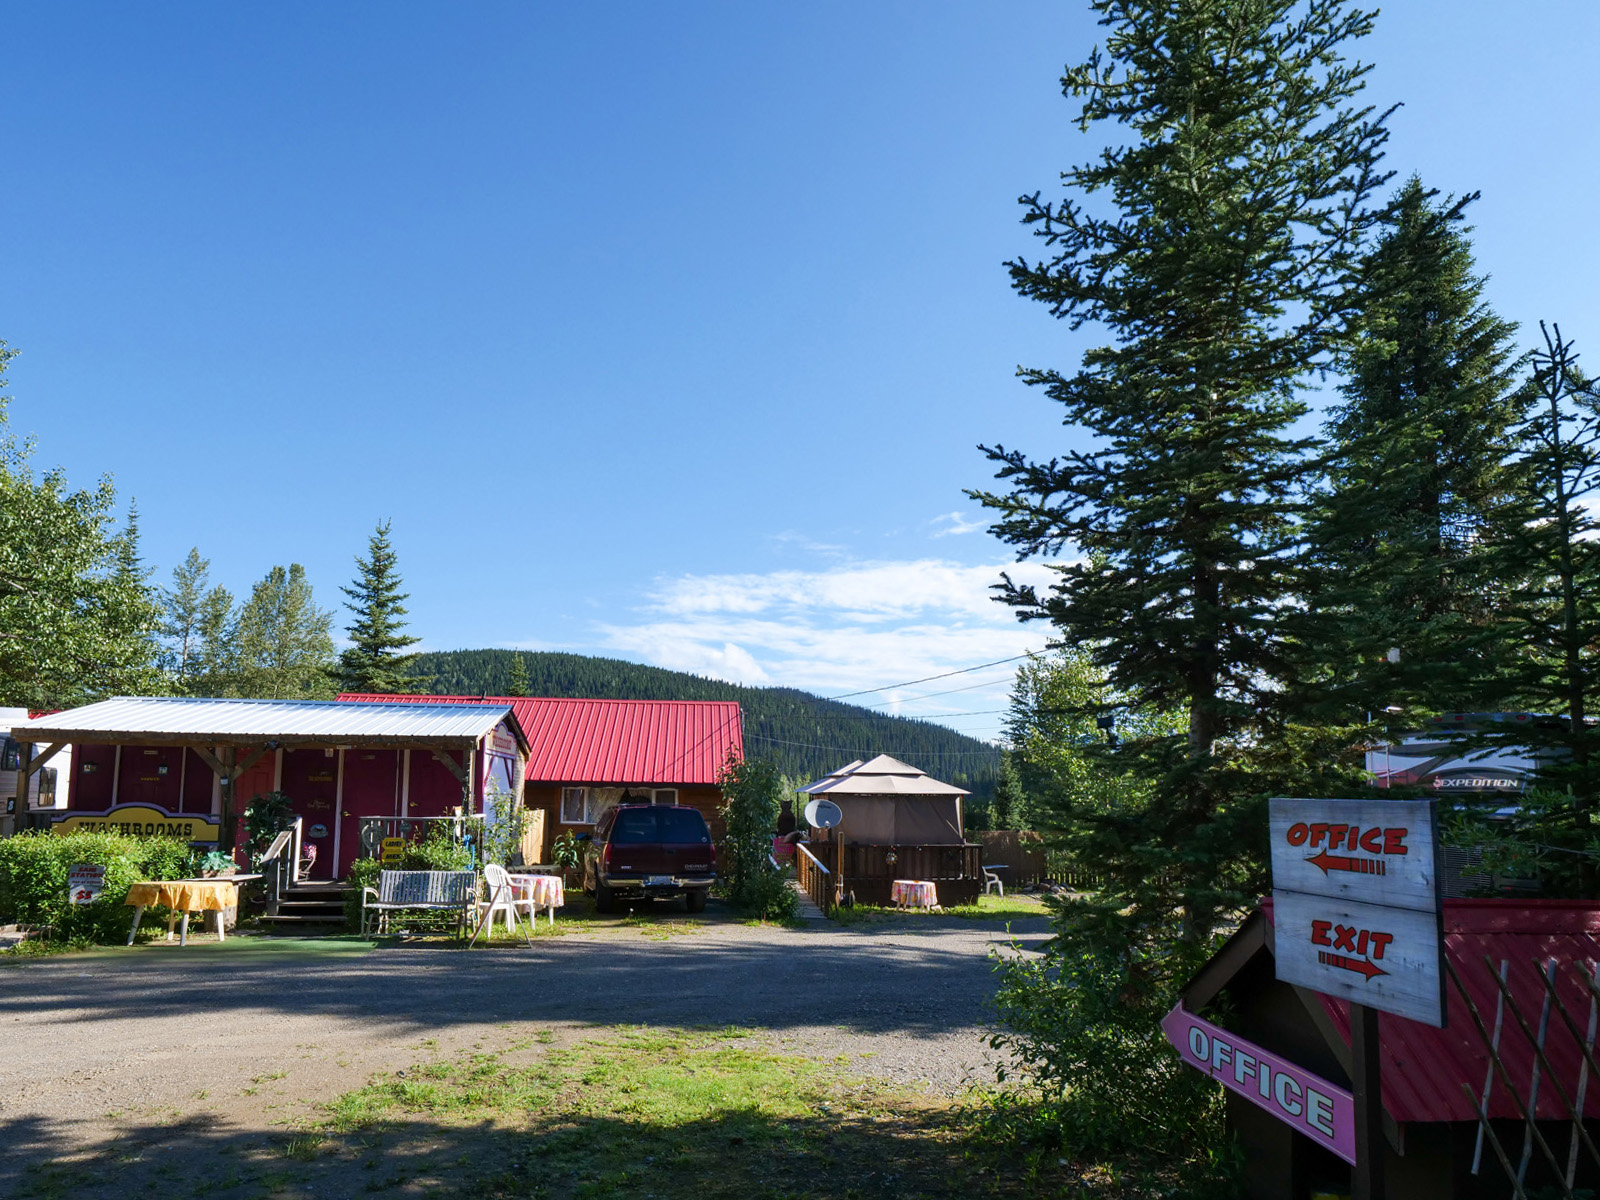 Cariboo joy rv park 17